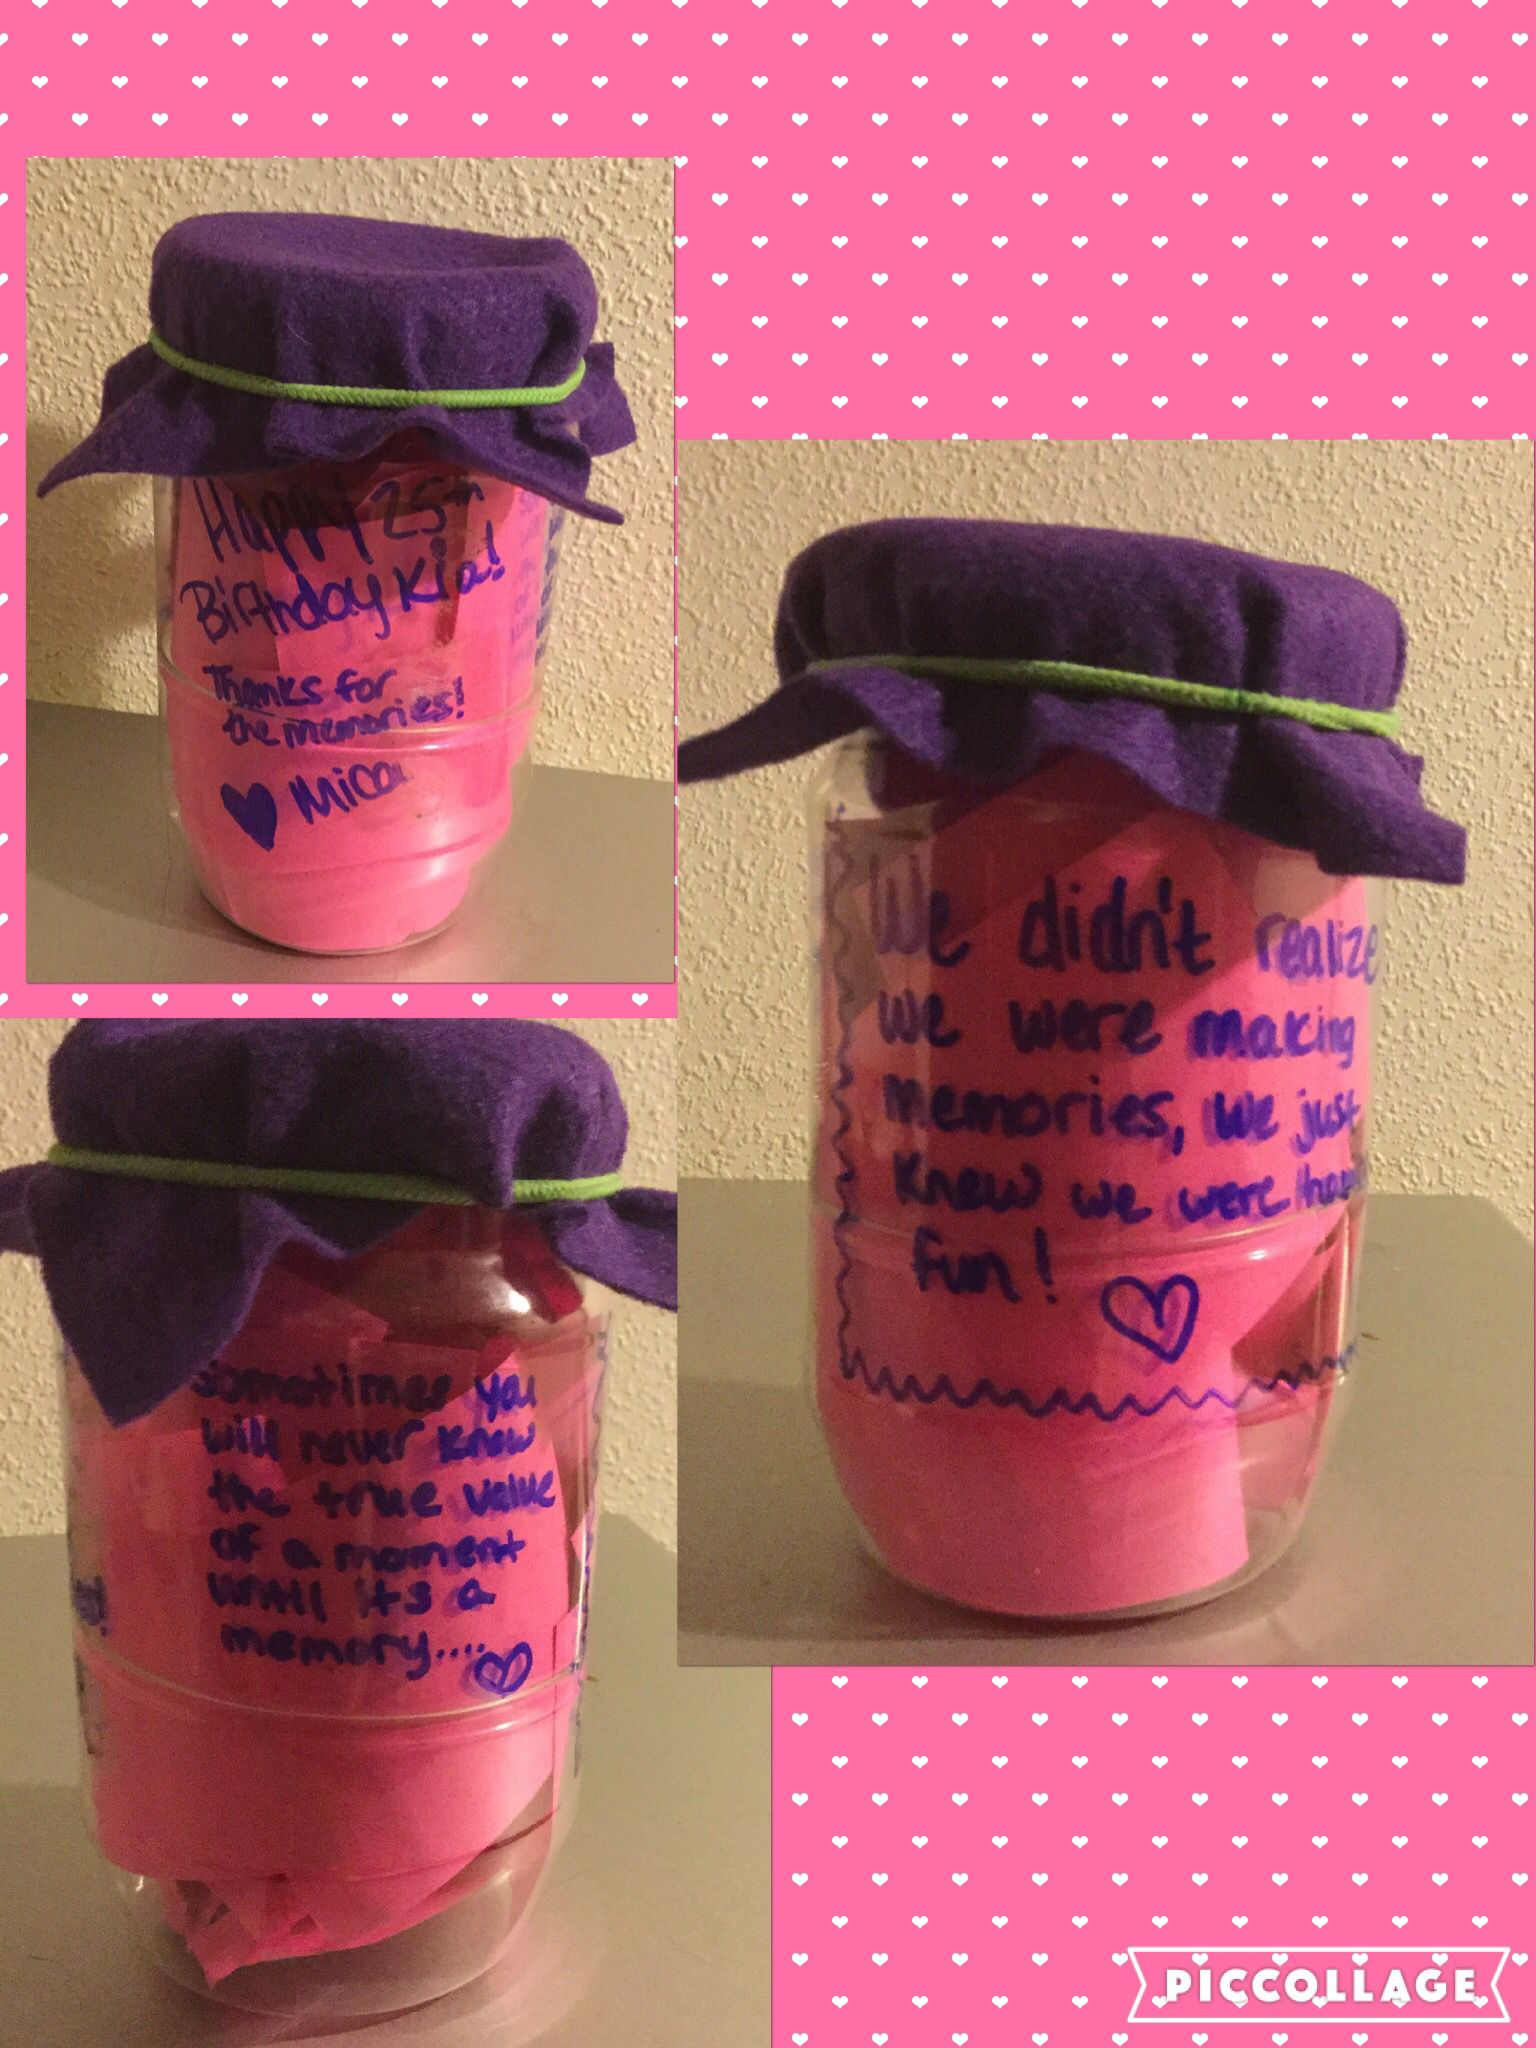 Cheap easy thoughtful gift....post it notes and memories in a jar!! Happy birthday or anniversary